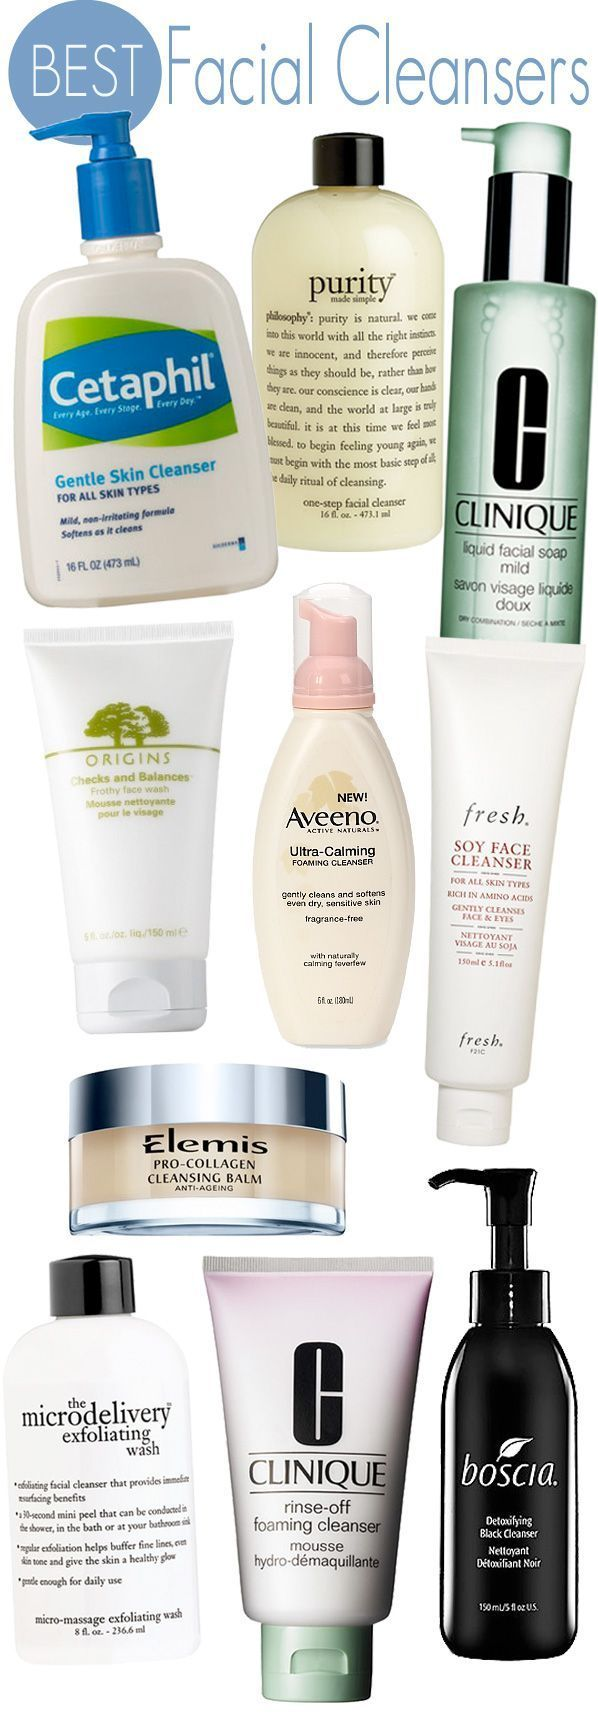 Top 10 Facial Cleansers.